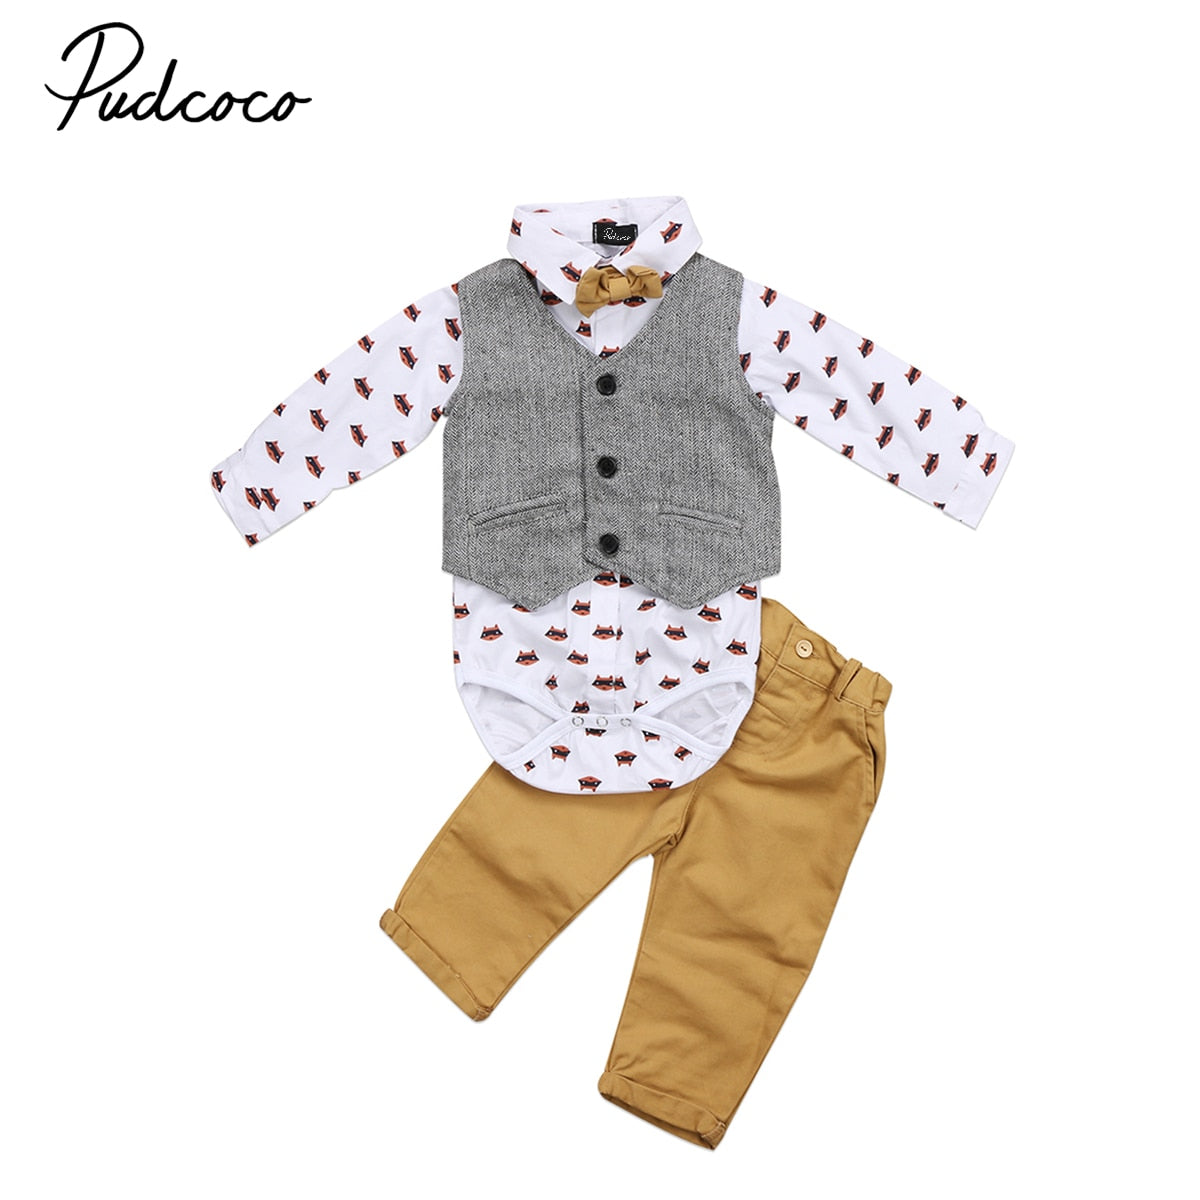 Pudcoco Gentleman Toddler Baby Boys Formal Fox Suit Bowknot Waistcoat Yellow Pants Bowtie Tuxedo Casual Outfits Autumn Set 2017-eosegal